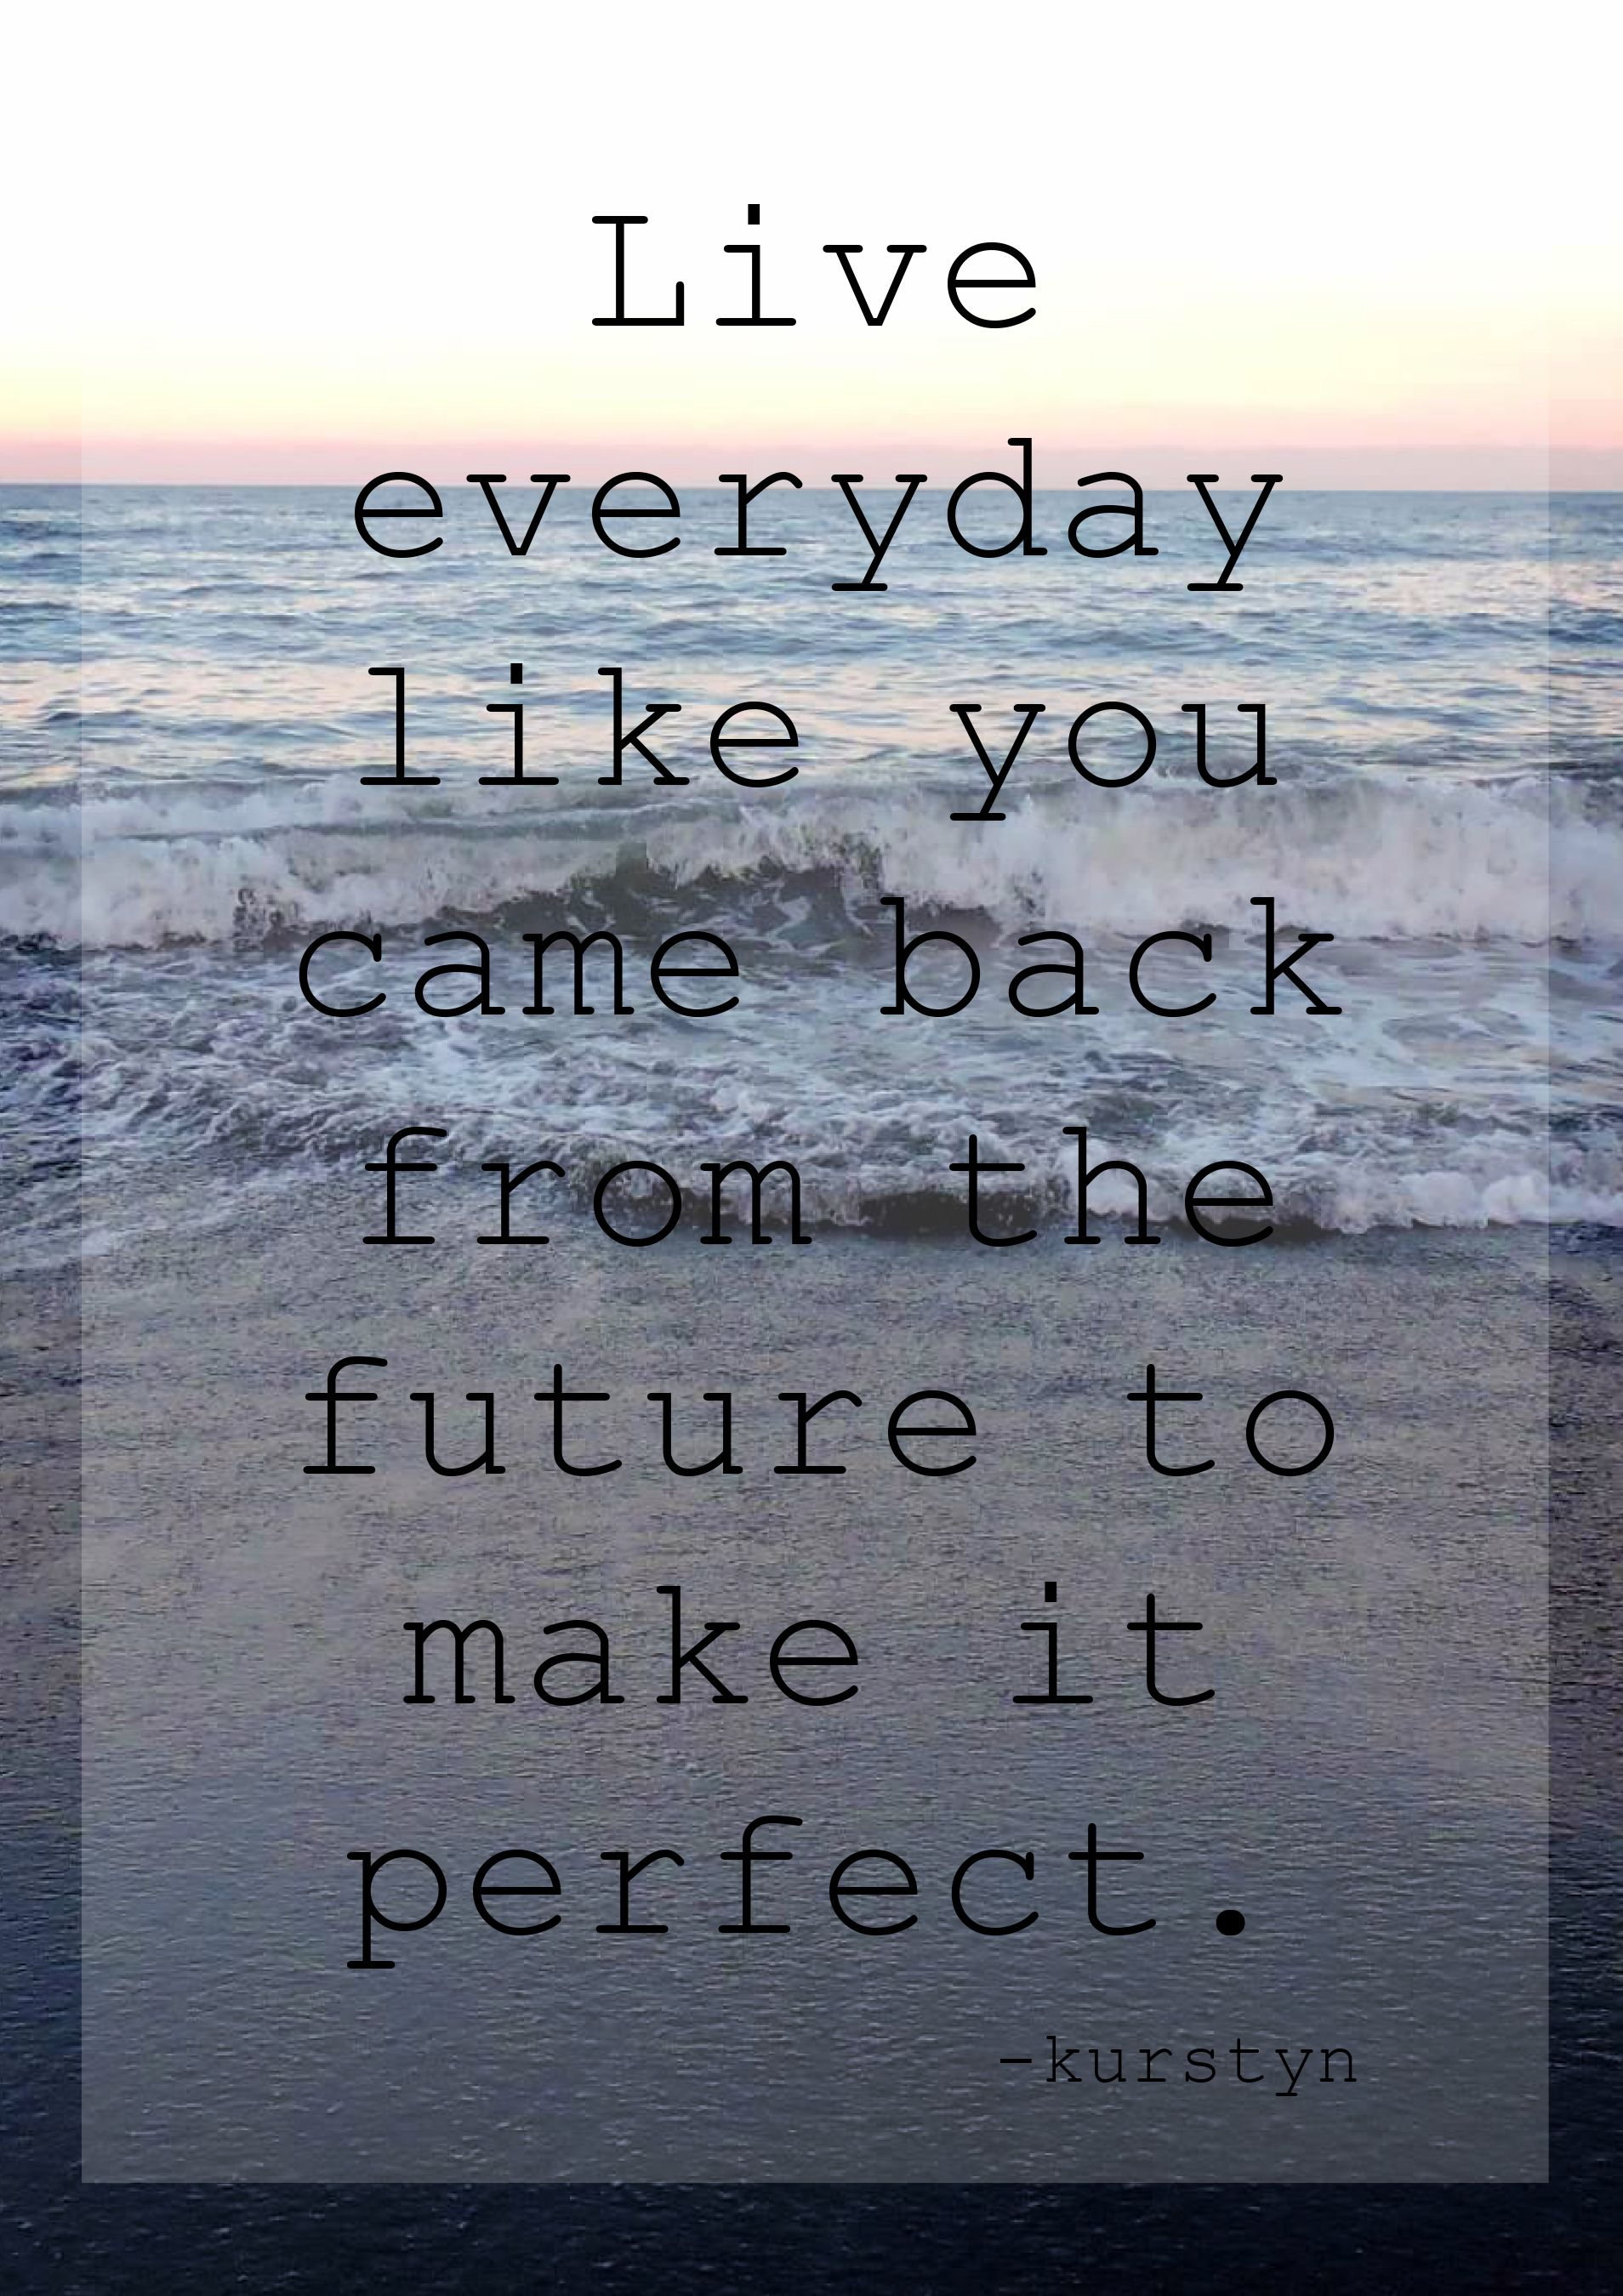 """""""Live everyday like you came back from the future to make it perfect."""" #motivation #liveeveryday #future #goals #dailyliving"""